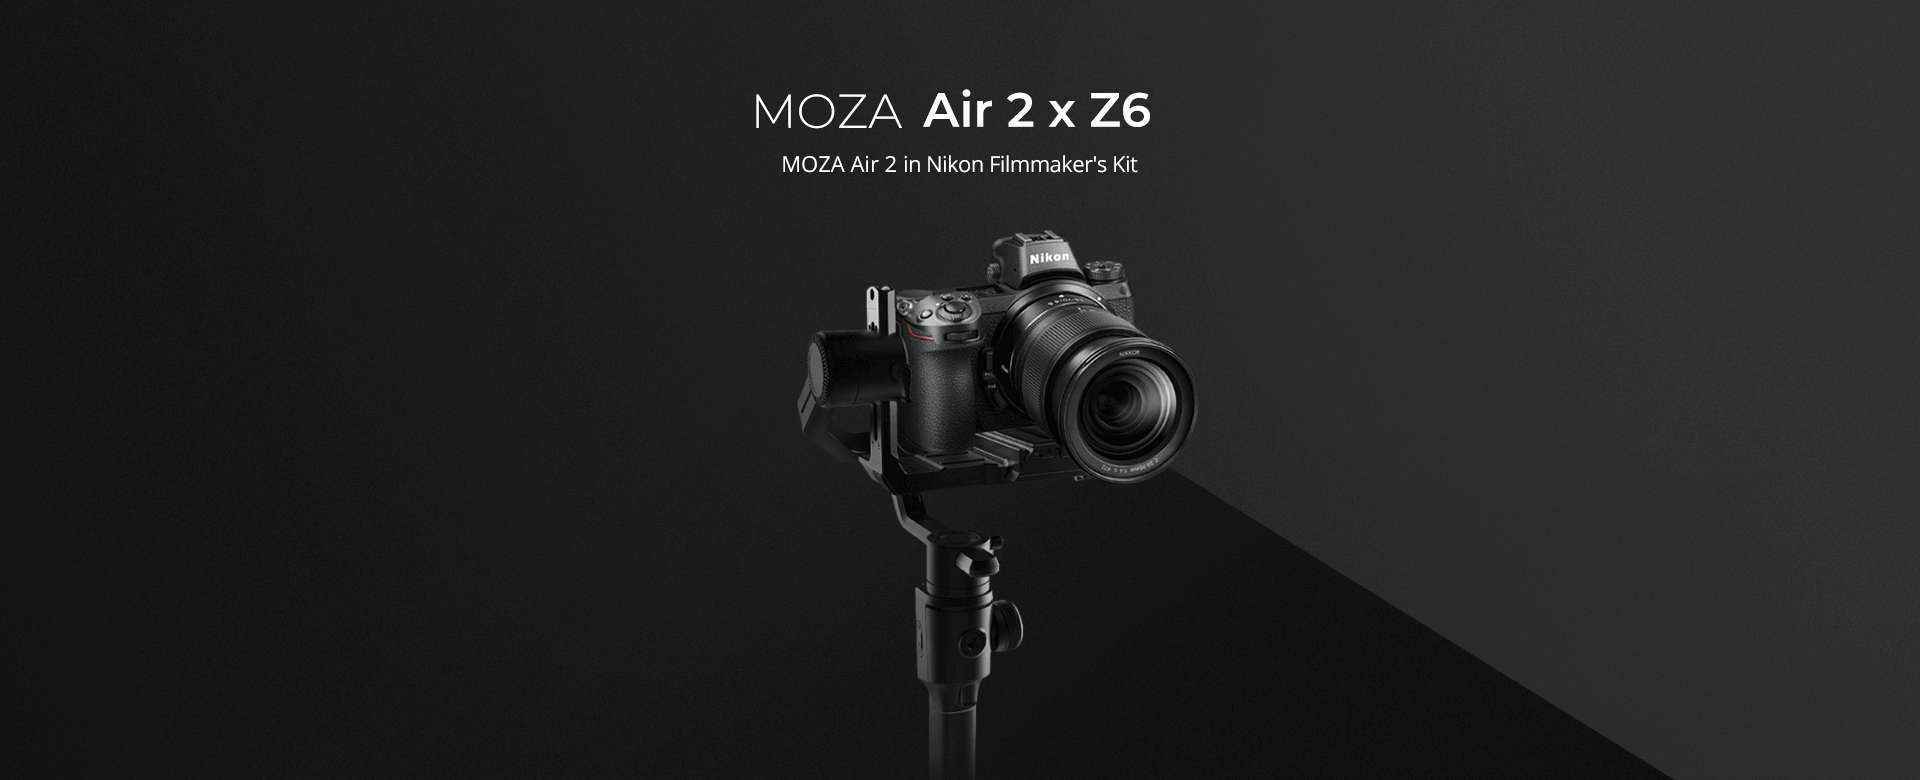 MOZA Air 2 in Nikon Filmmaker's Kit